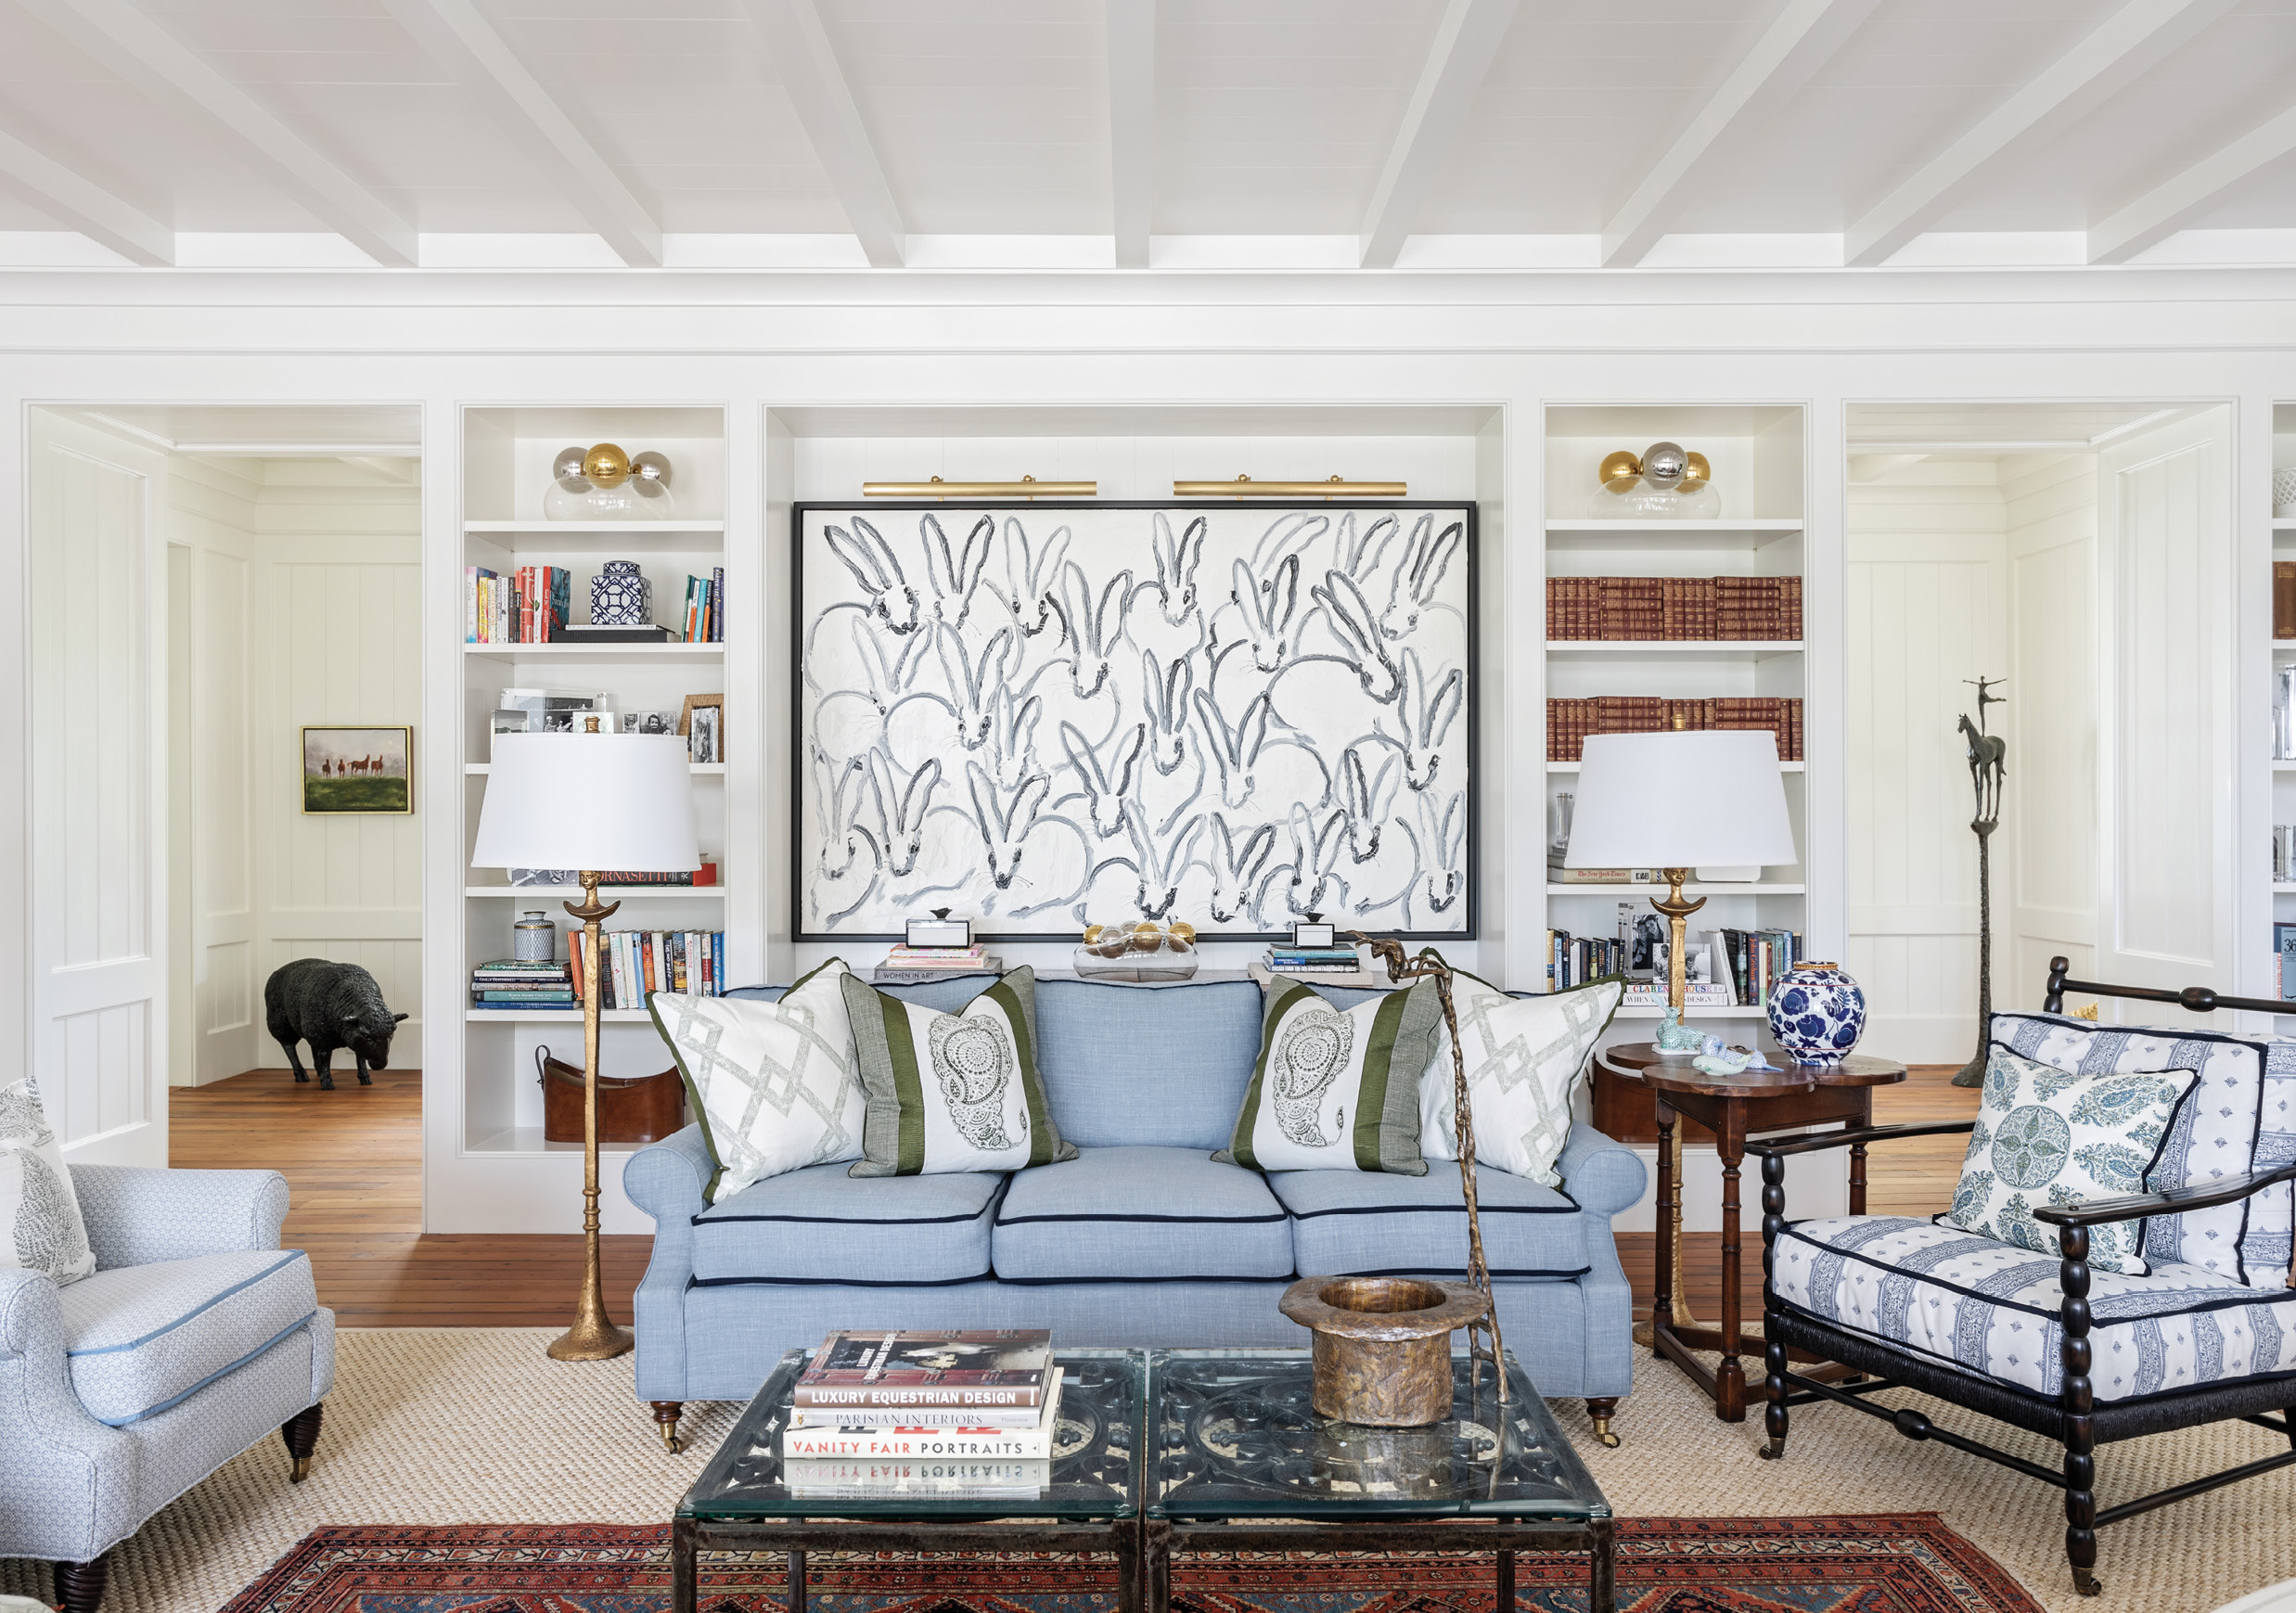 """The architects designed spaces for the client's artwork, such as this built-in made for Hunt Slonem's Bunnies. Interior designer Melissa Ervin designed the living room to be comfortable and livable with a green and blue color palette playing on the natural scene beyond its large windows. The Edward Ferrell sofa is covered in CalvinFabric's """"Camino-Lake,"""" tipped with grosgrain ribbon, a small detail with a large impact."""